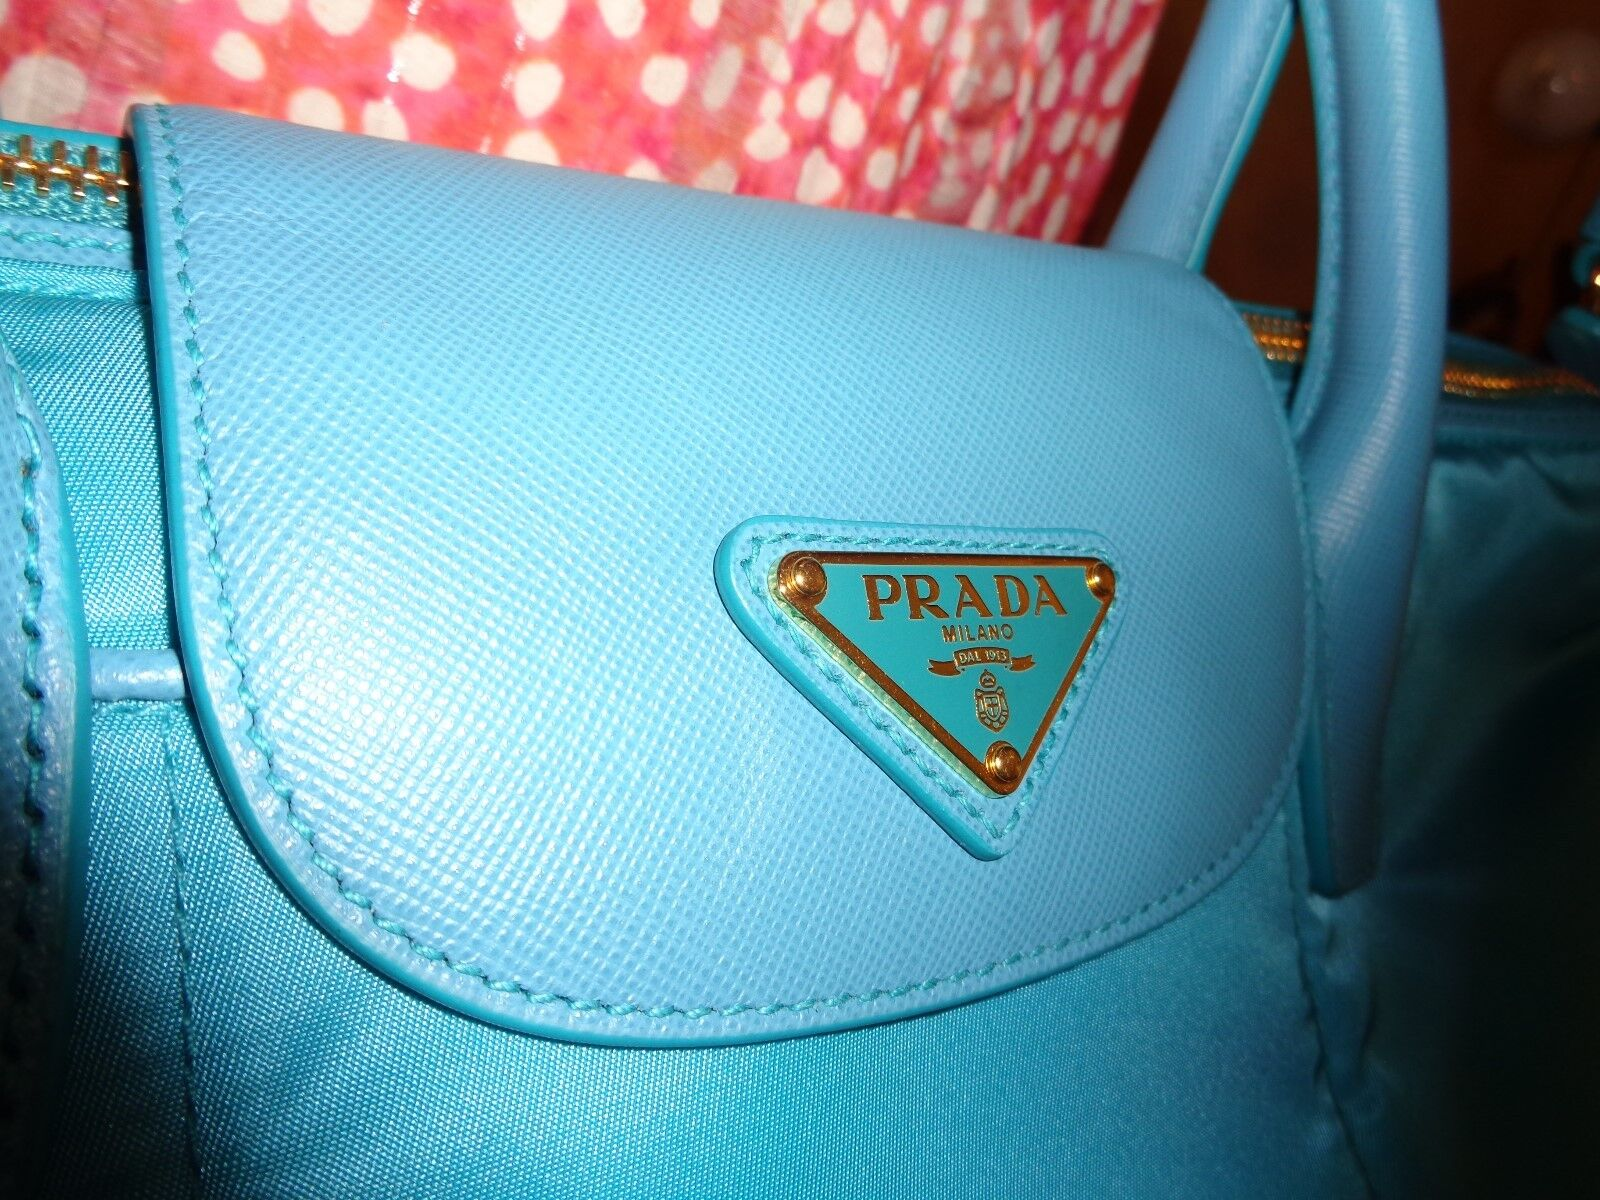 7af91959a6fda7 PRADA Tessuto Saffiano Nylon Tote Shoulder Turquoise Bn2106 Dustbag for  sale online | eBay